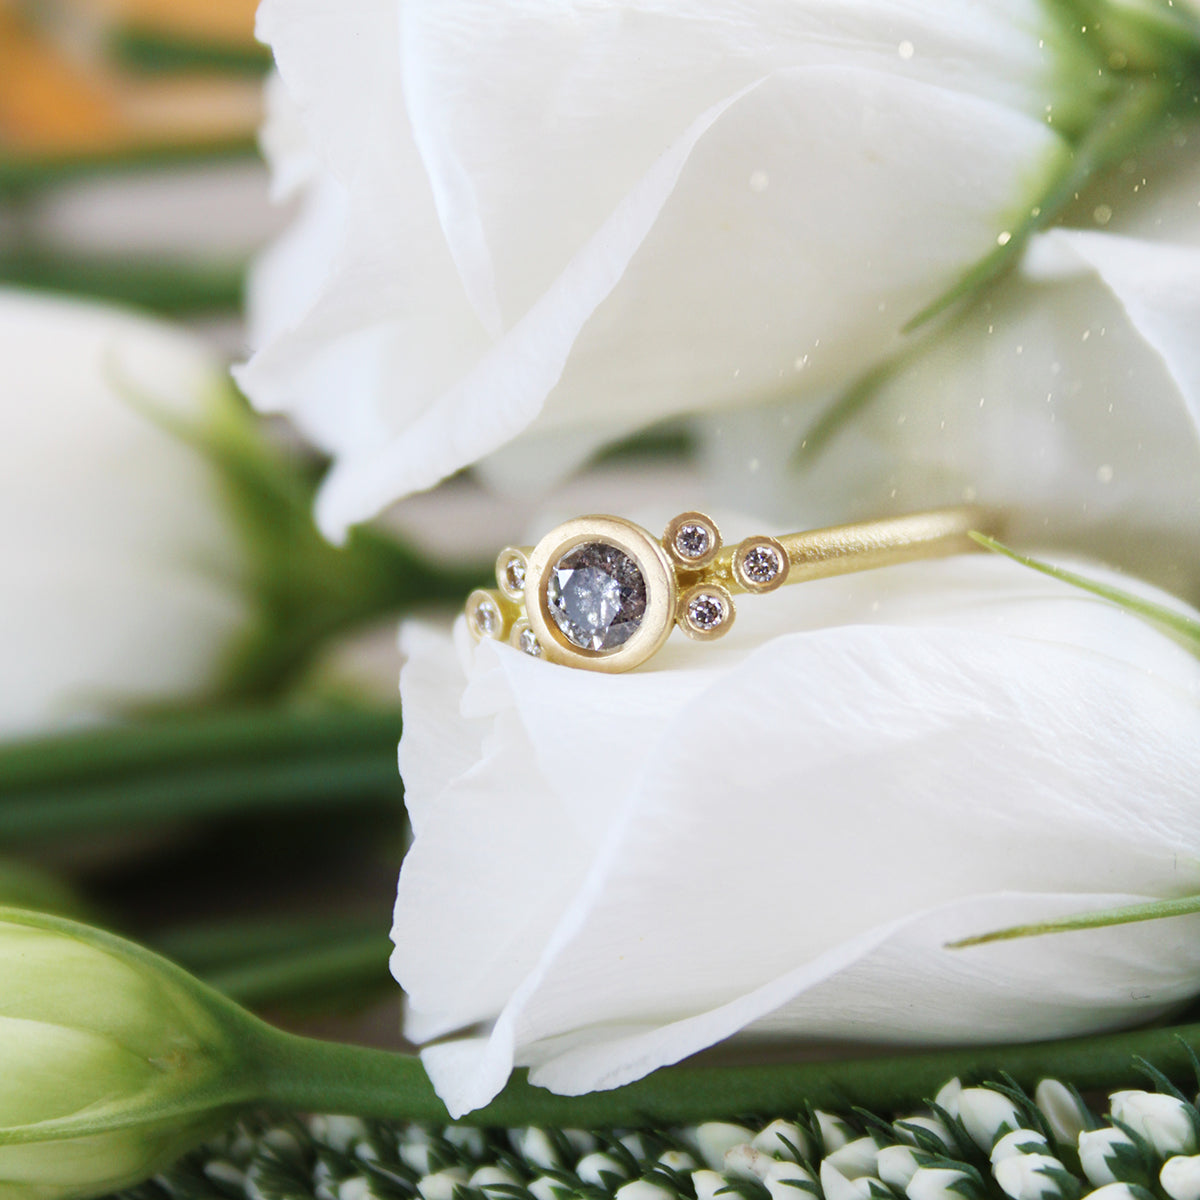 30pt Symmetrical Salt and Pepper Diamond & 18ct Yellow Gold Cluster Ring